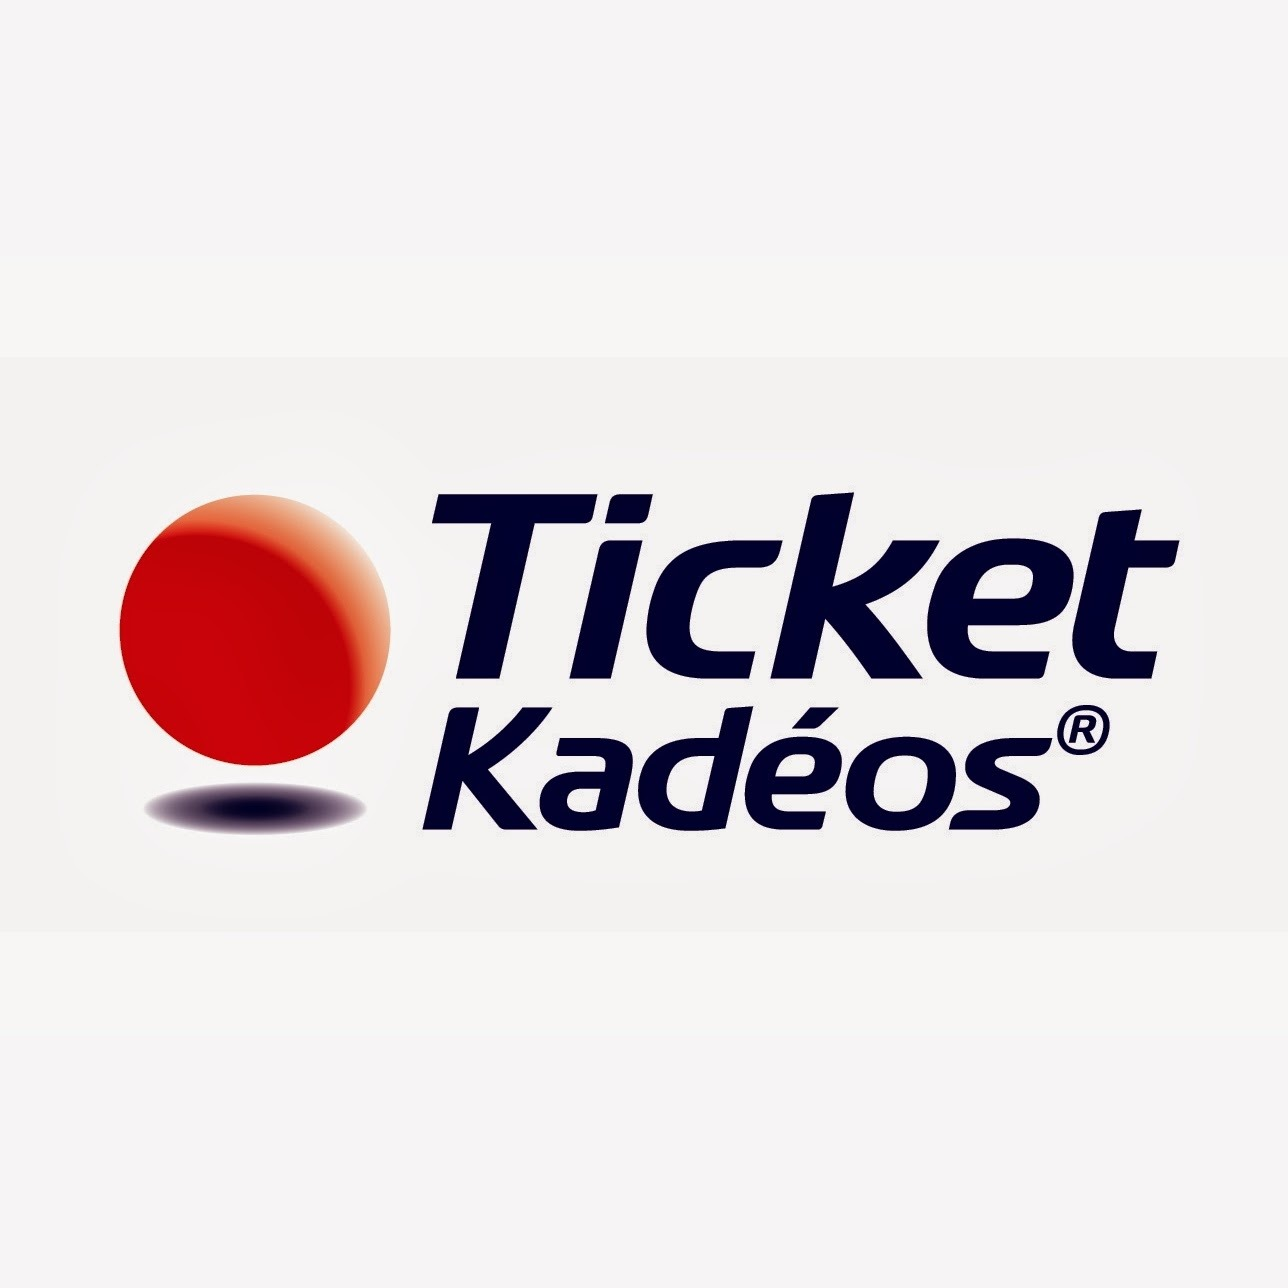 Ticket-Kadeos-HD1